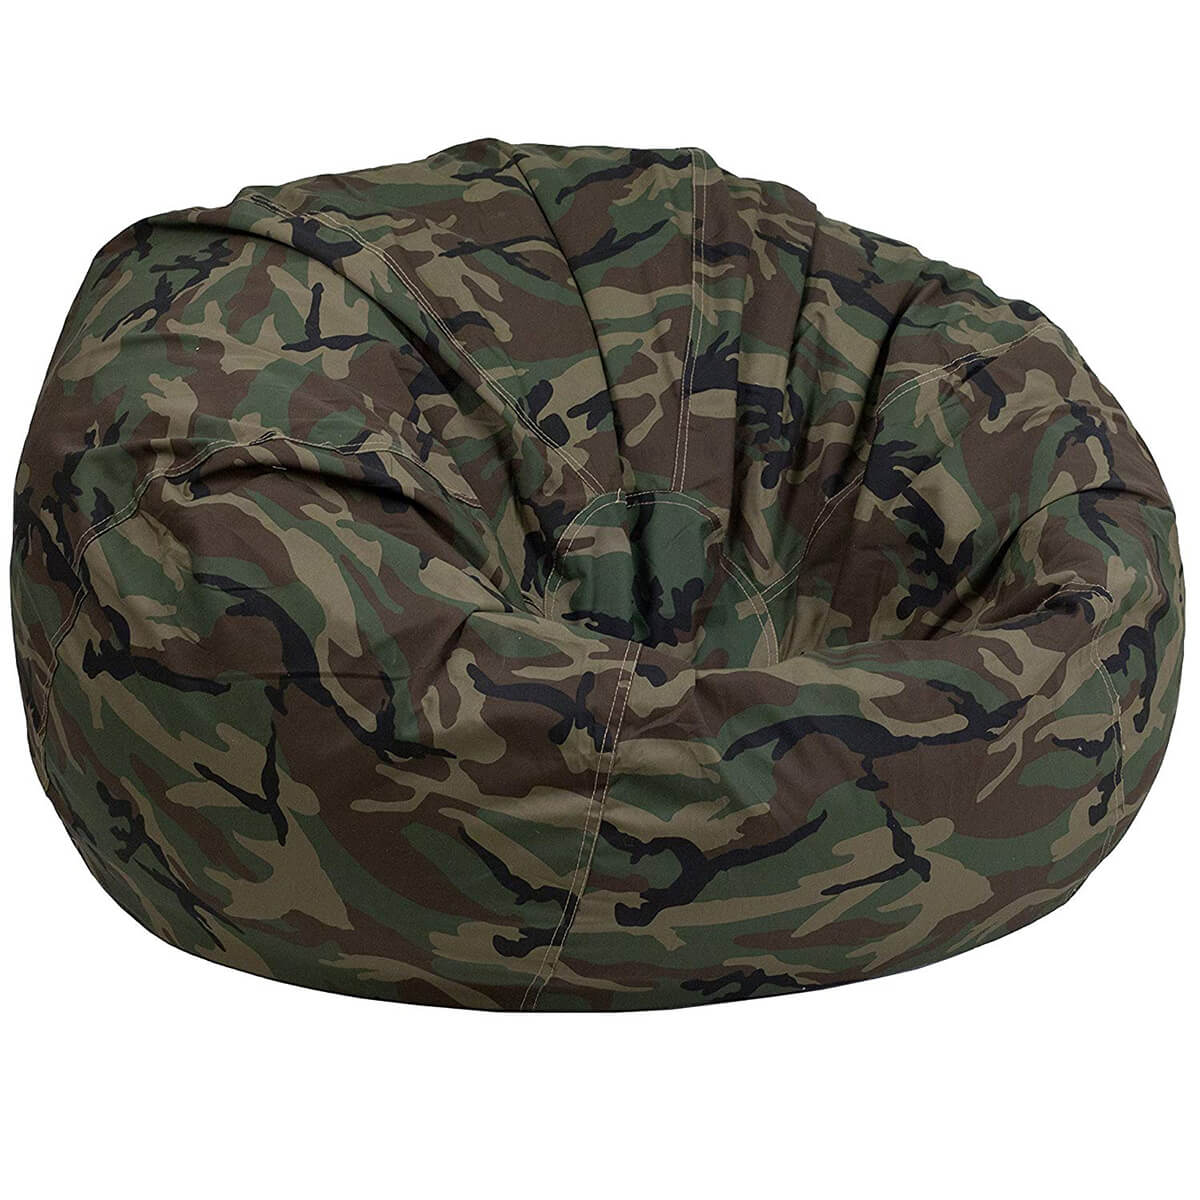 Flash Furniture Camouflage Oversized Bean Bag Chair for Kids